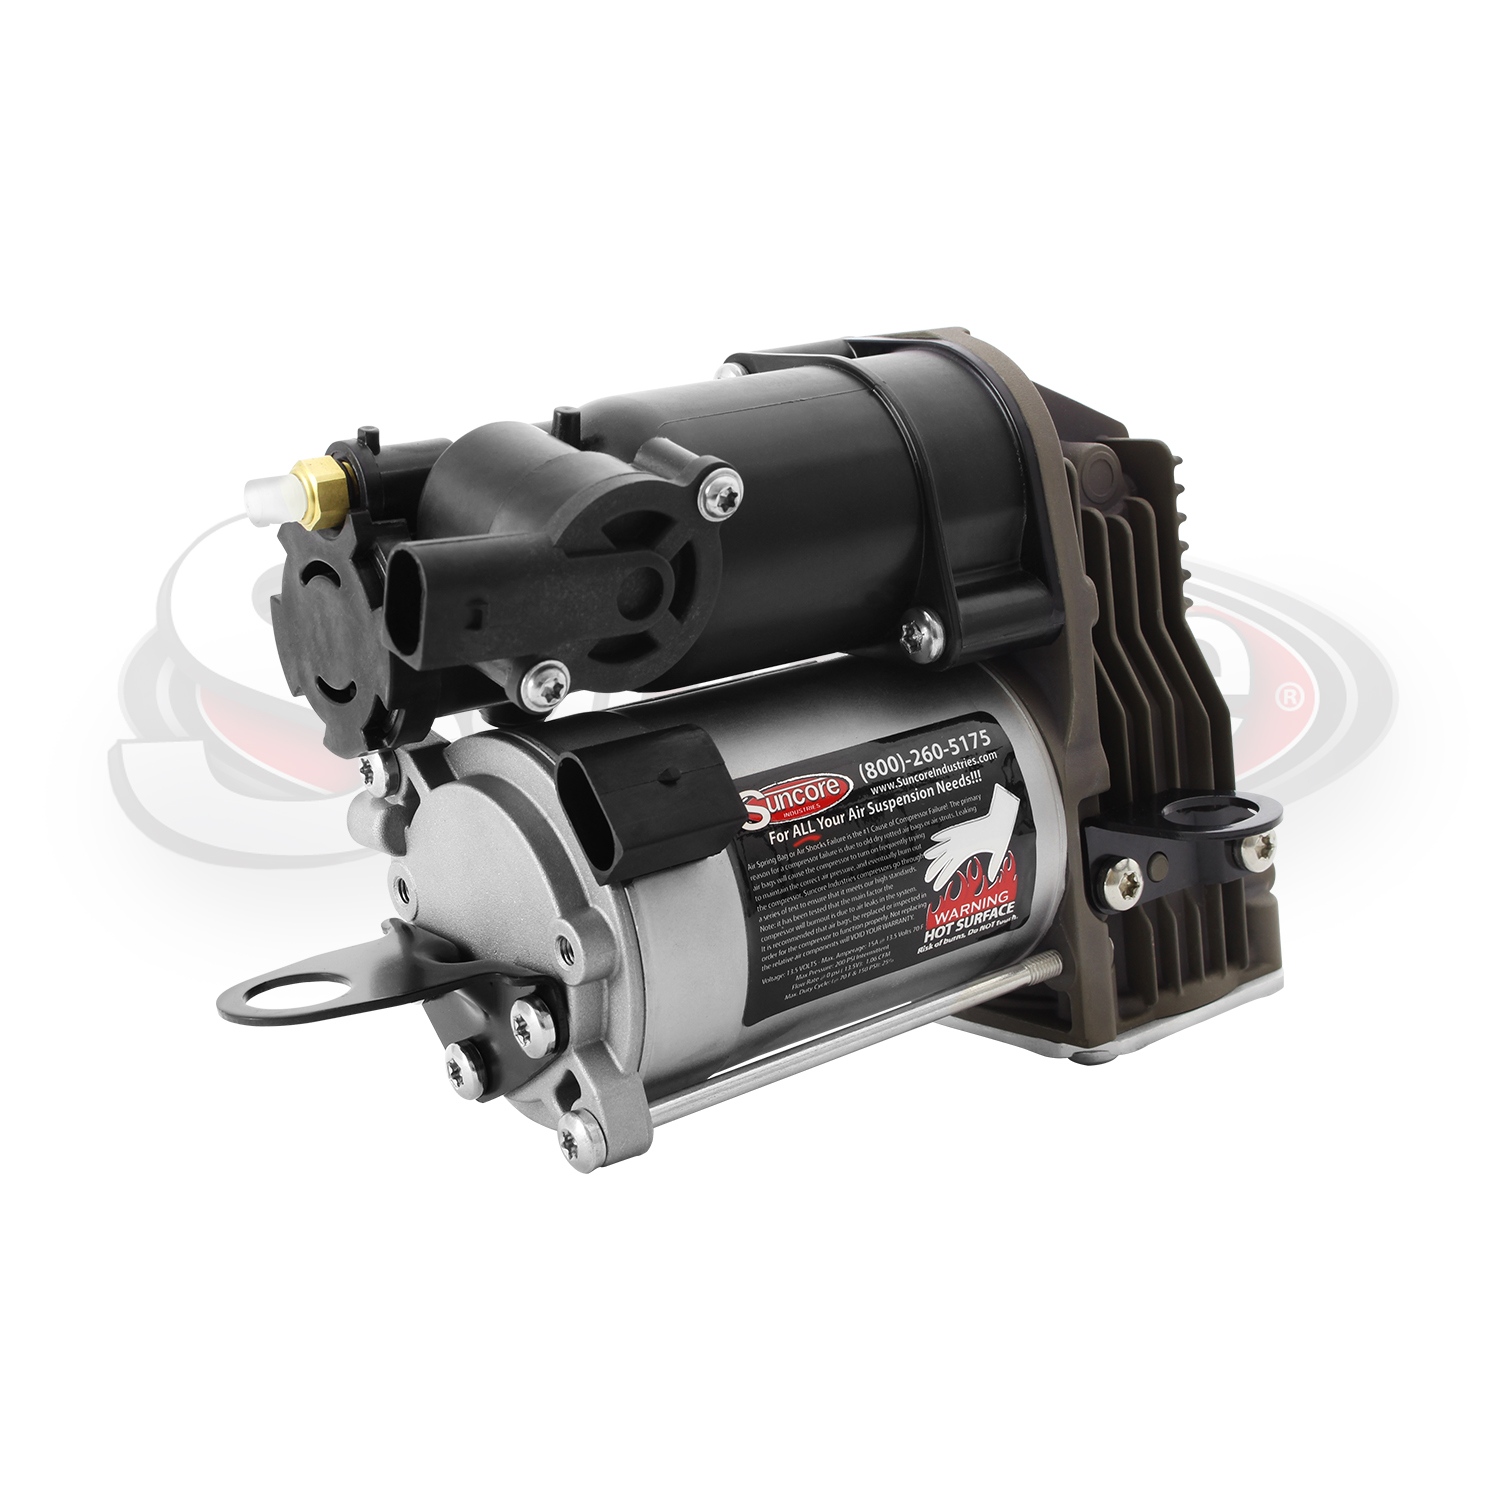 Airmatic Suspension Air Compressor Pump New -CL & S Class Repl. 2213201704